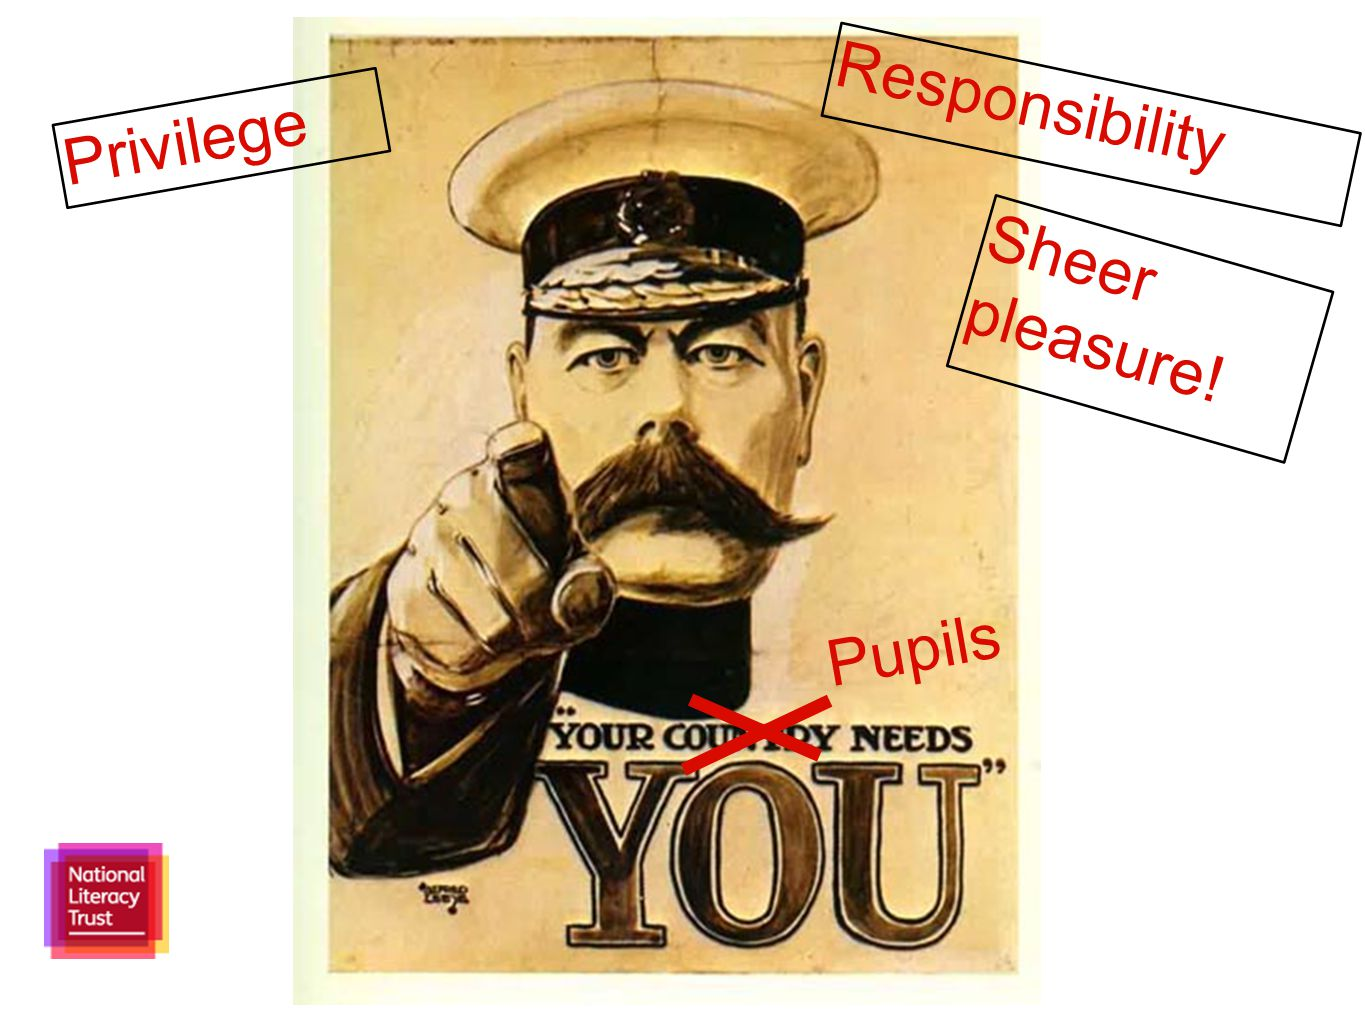 Sheer pleasure! Pupils Responsibility Privilege